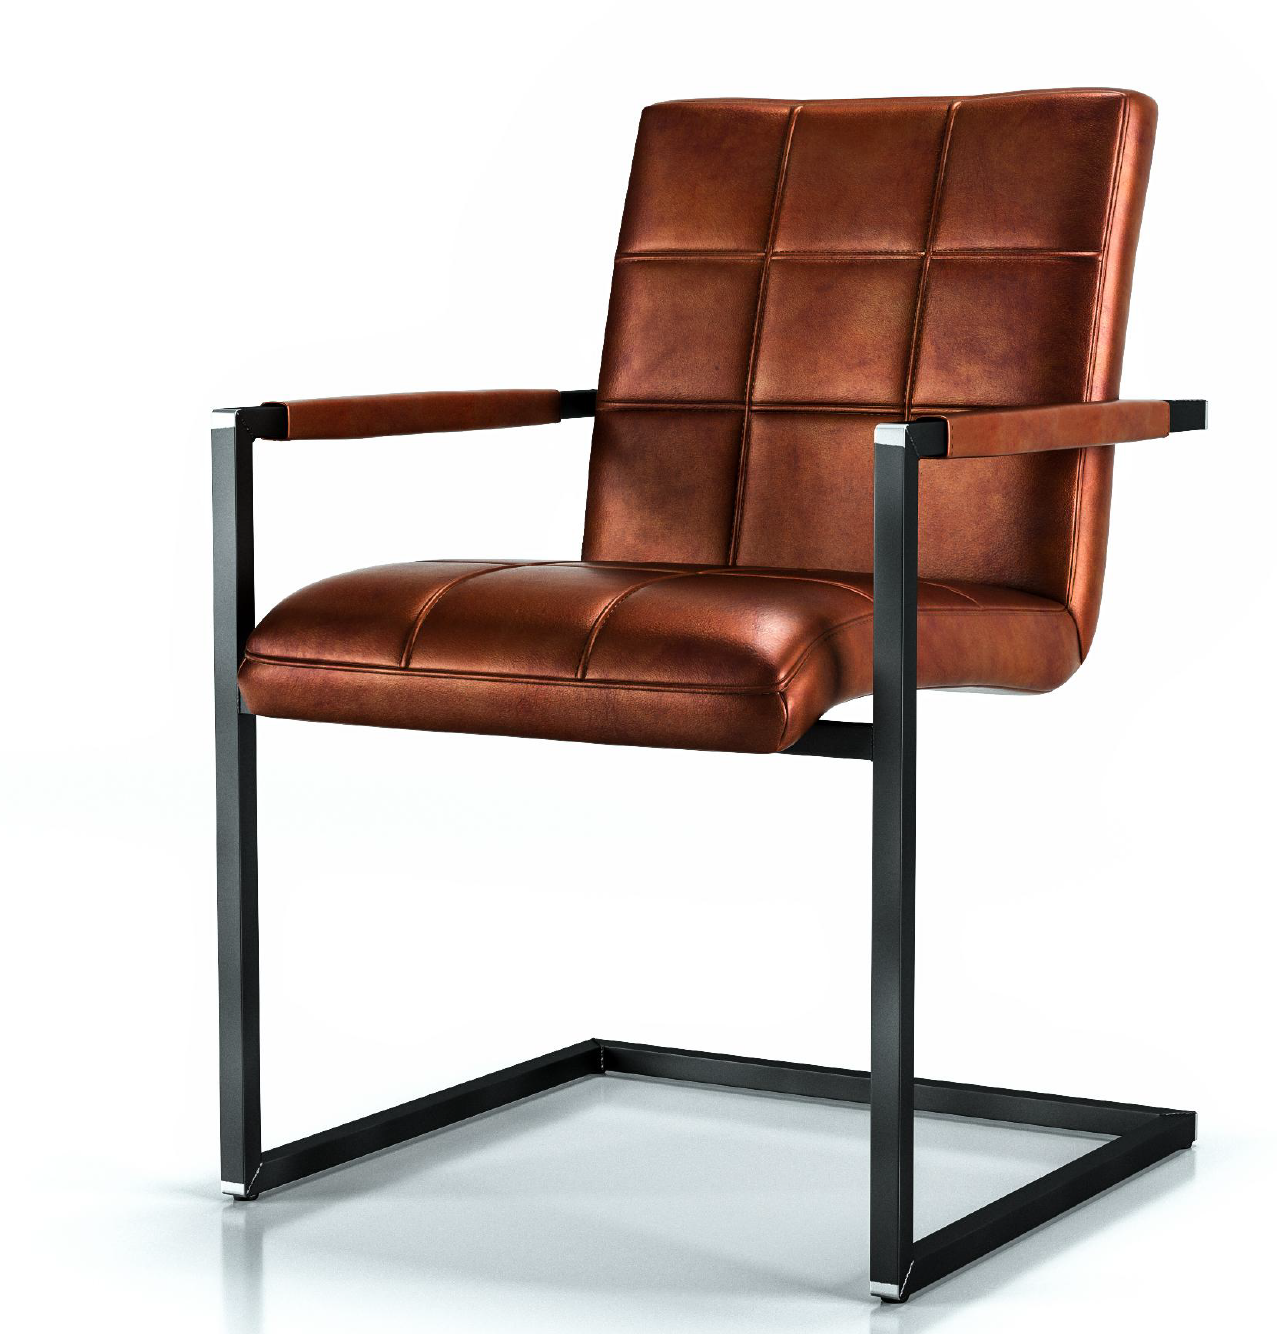 3d-configurator-furniture-chair-amsterdam-model-render